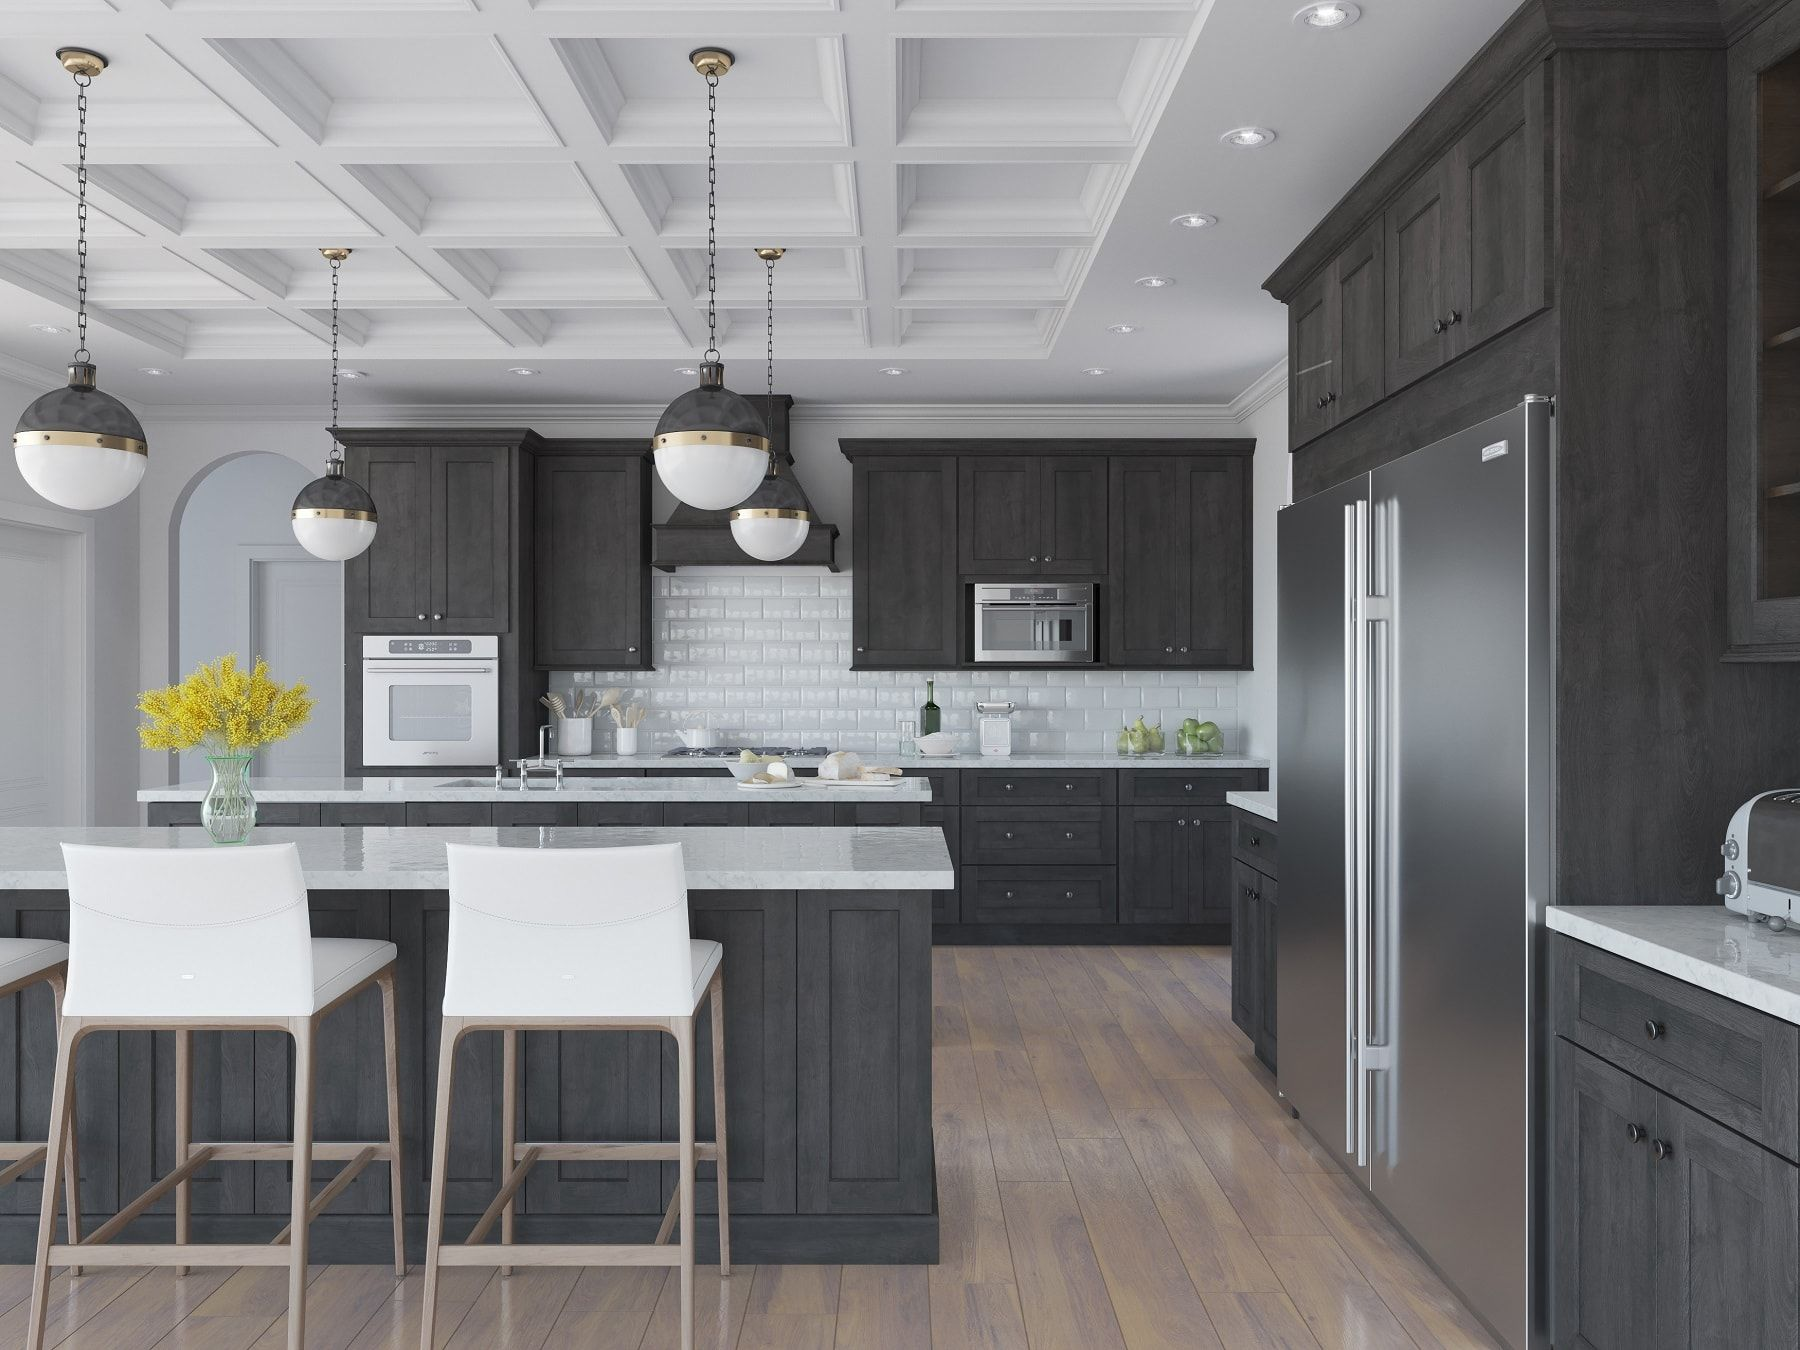 Natural Grey Shaker Ready To Assemble Kitchen Cabinets Kitchen Cabinets Th Kitchen Cabinet Styles Beautiful Kitchen Cabinets Shaker Style Kitchen Cabinets